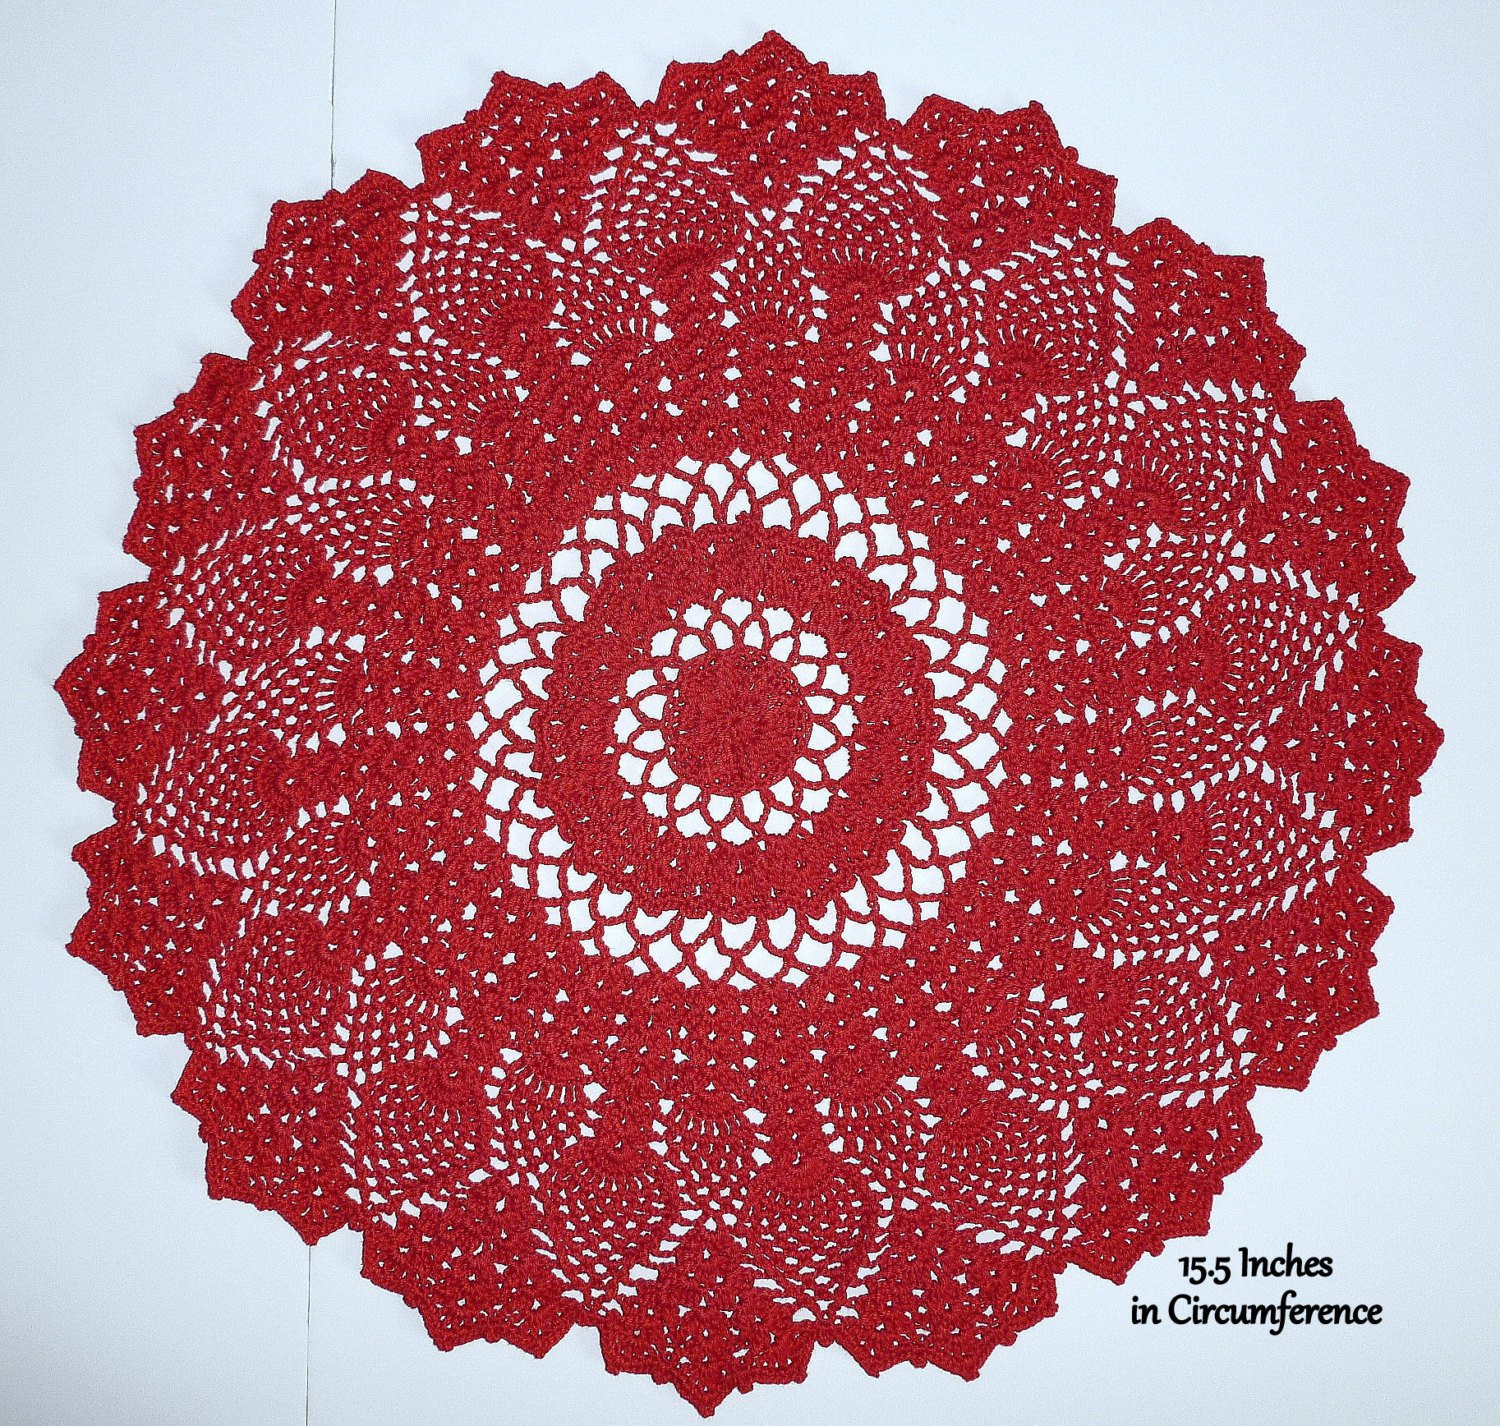 Red Doilies Awesome Crochet Doily Home Decor Red Doily Fine Crochet Doily Lace Of Luxury 43 Images Red Doilies